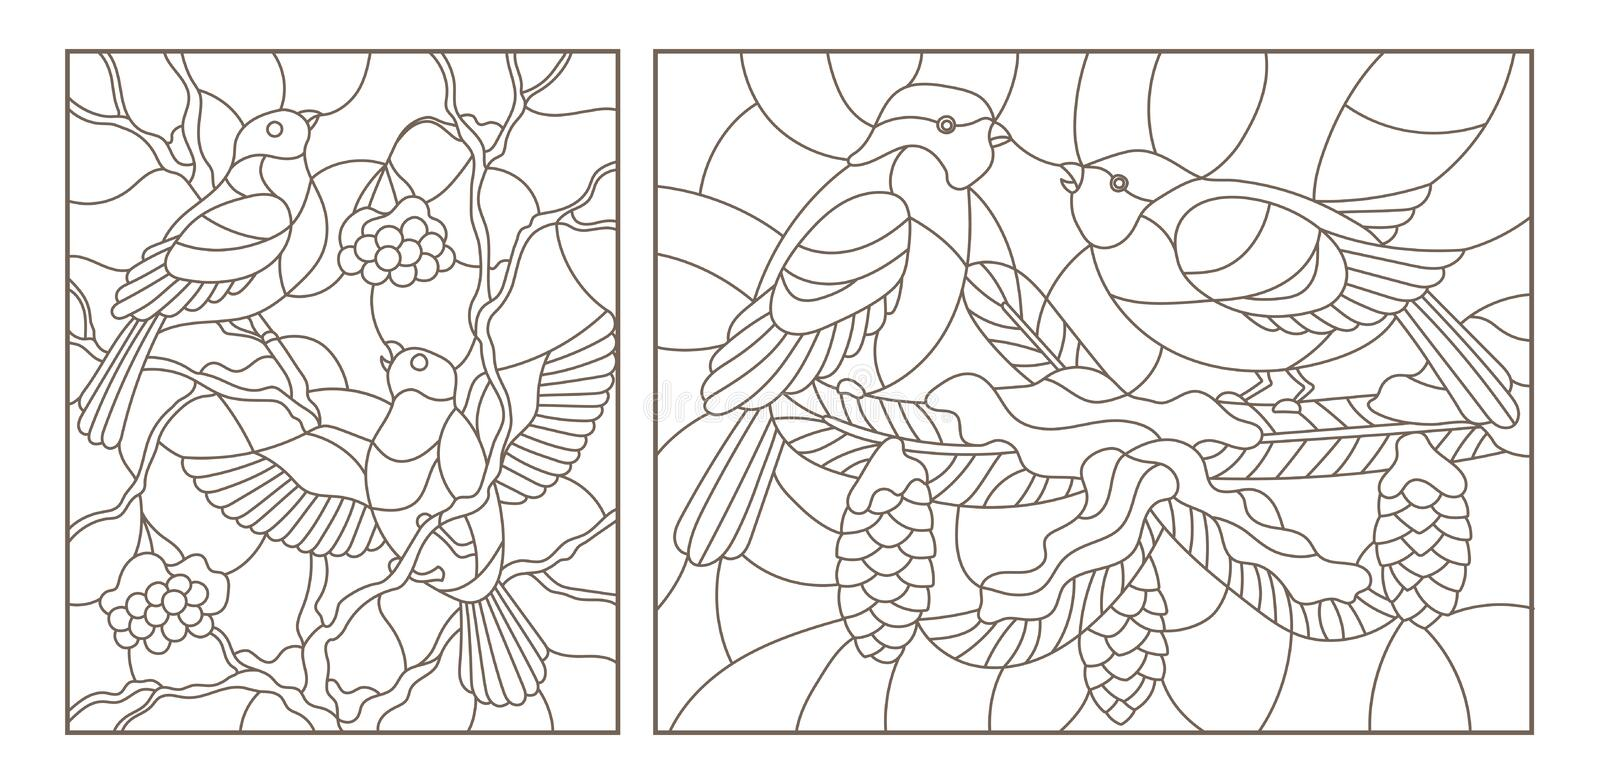 Contour set with illustrations of stained glass with birds on the branches of snow-covered trees , dark outlines on a white backg. Set contour illustrations of royalty free illustration